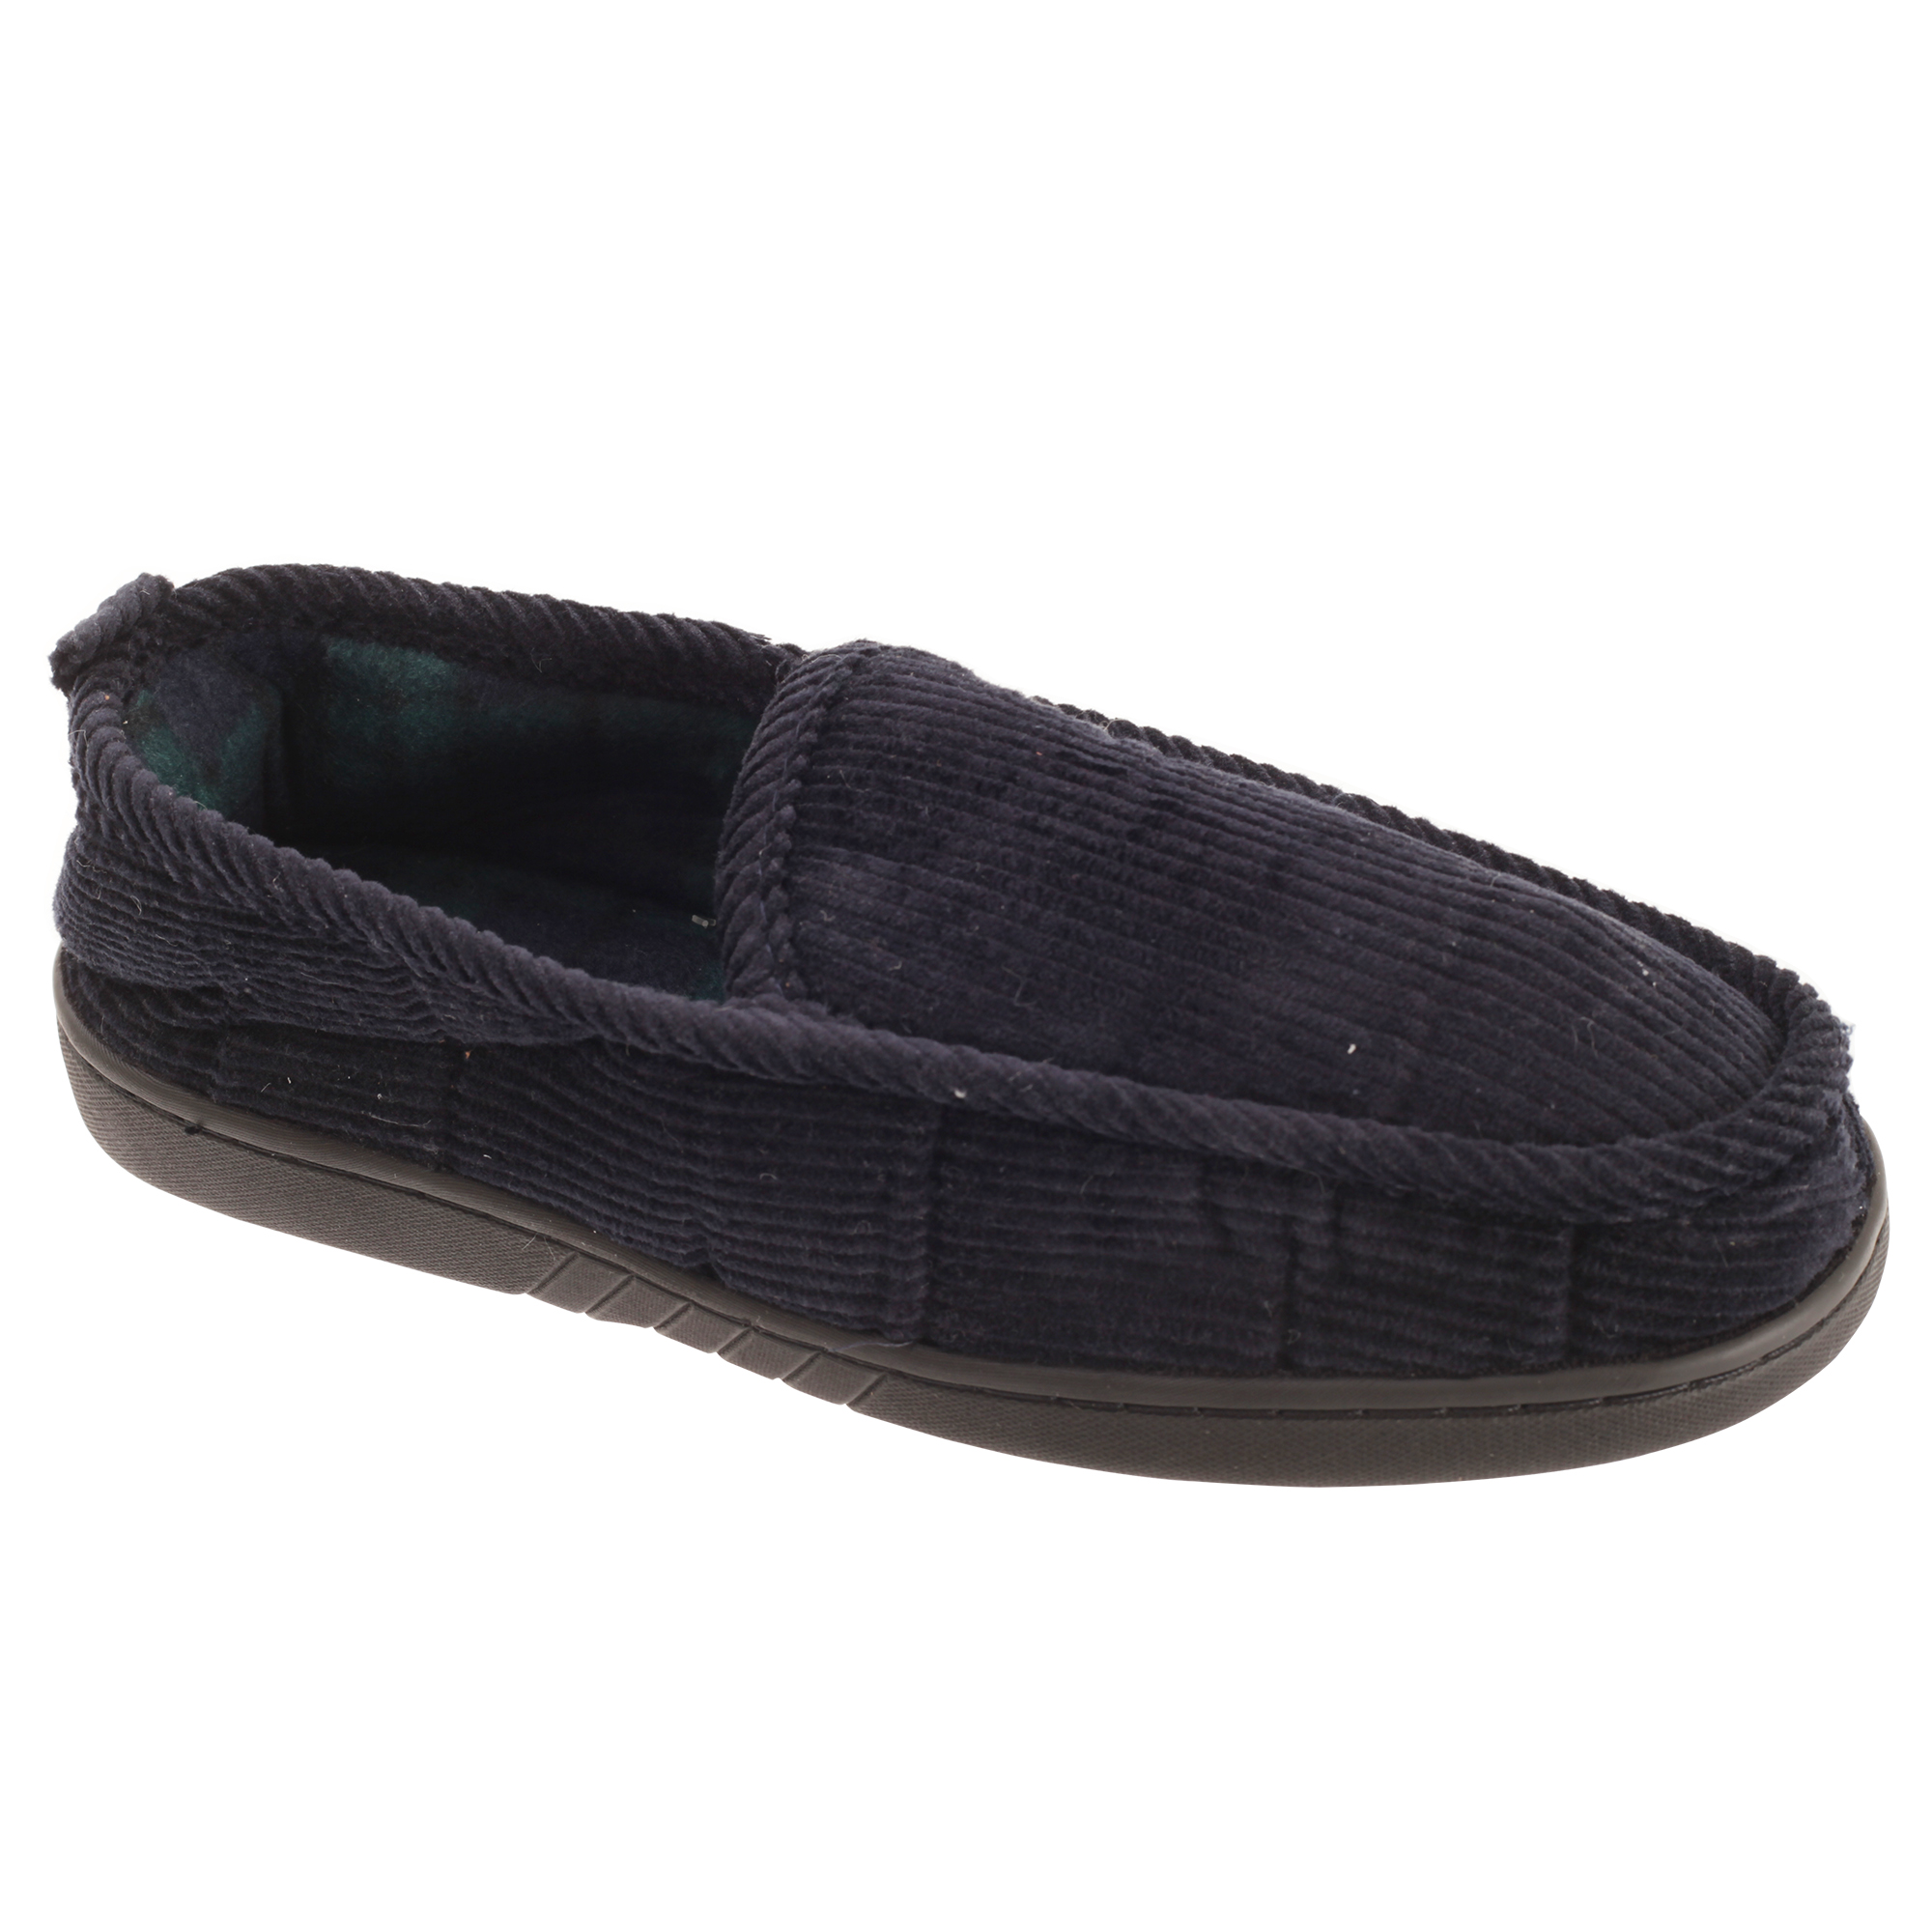 Fleece Lined Slippers Mens Shoes